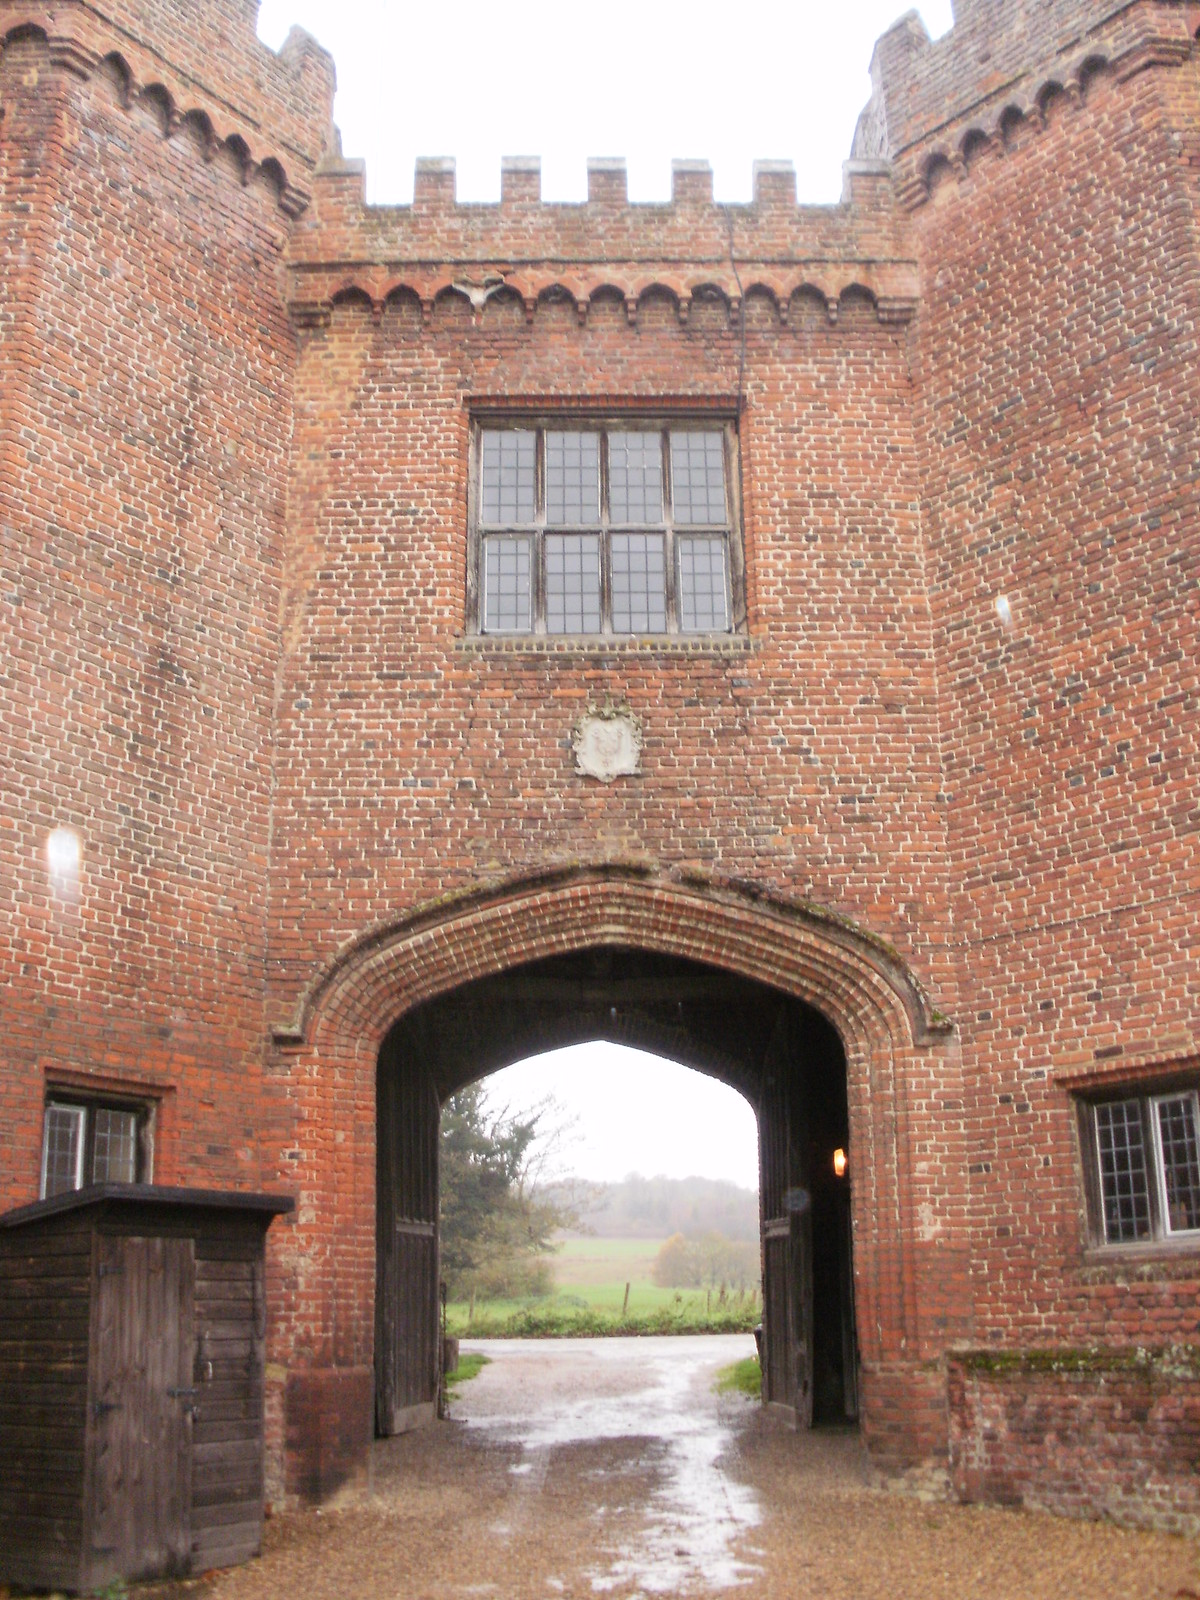 Lullingstone Castle 2 OLYMPUS DIGITAL CAMERA